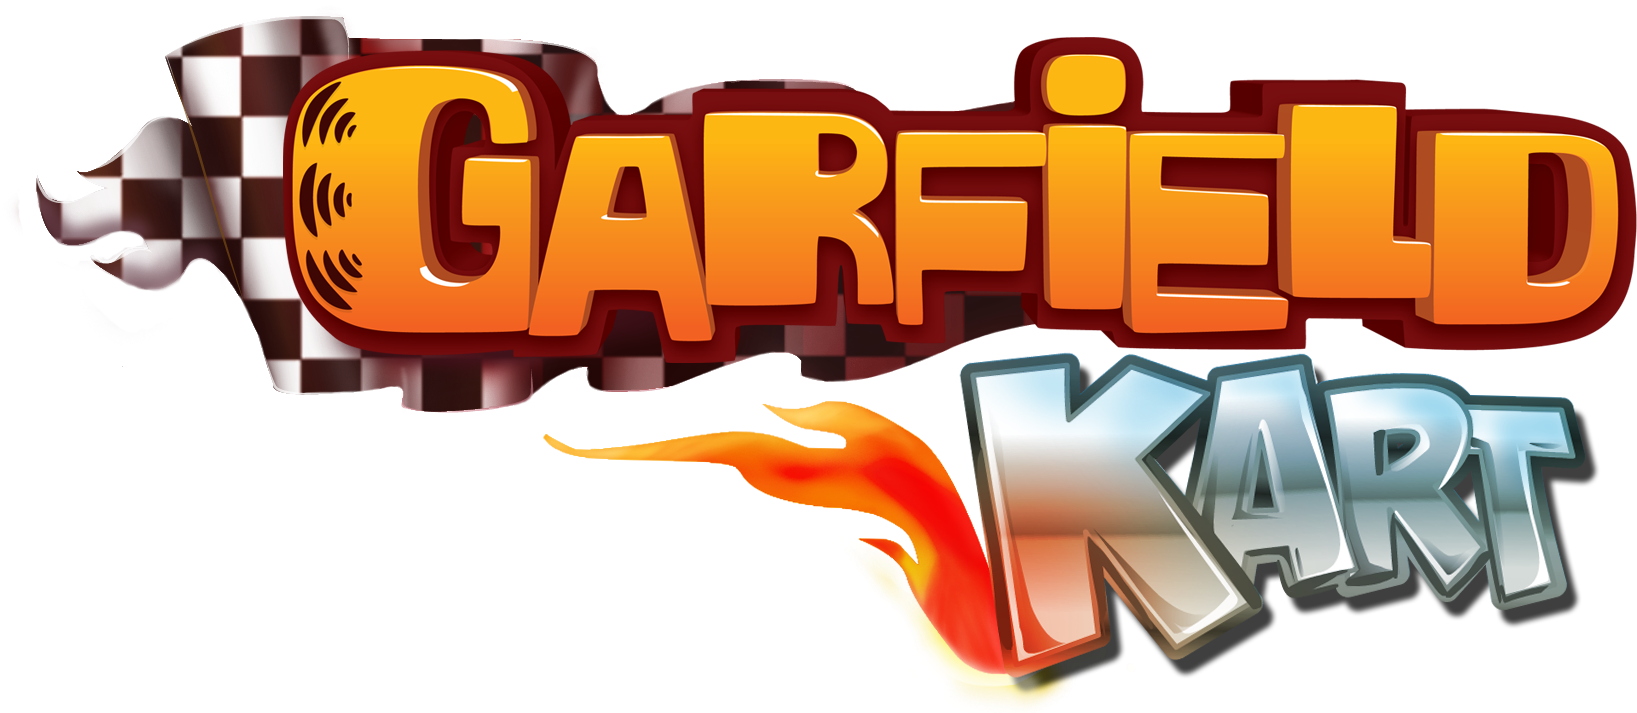 Download Garfield Kart Garfield Kart Logo Png Png Image With No Background Pngkey Com